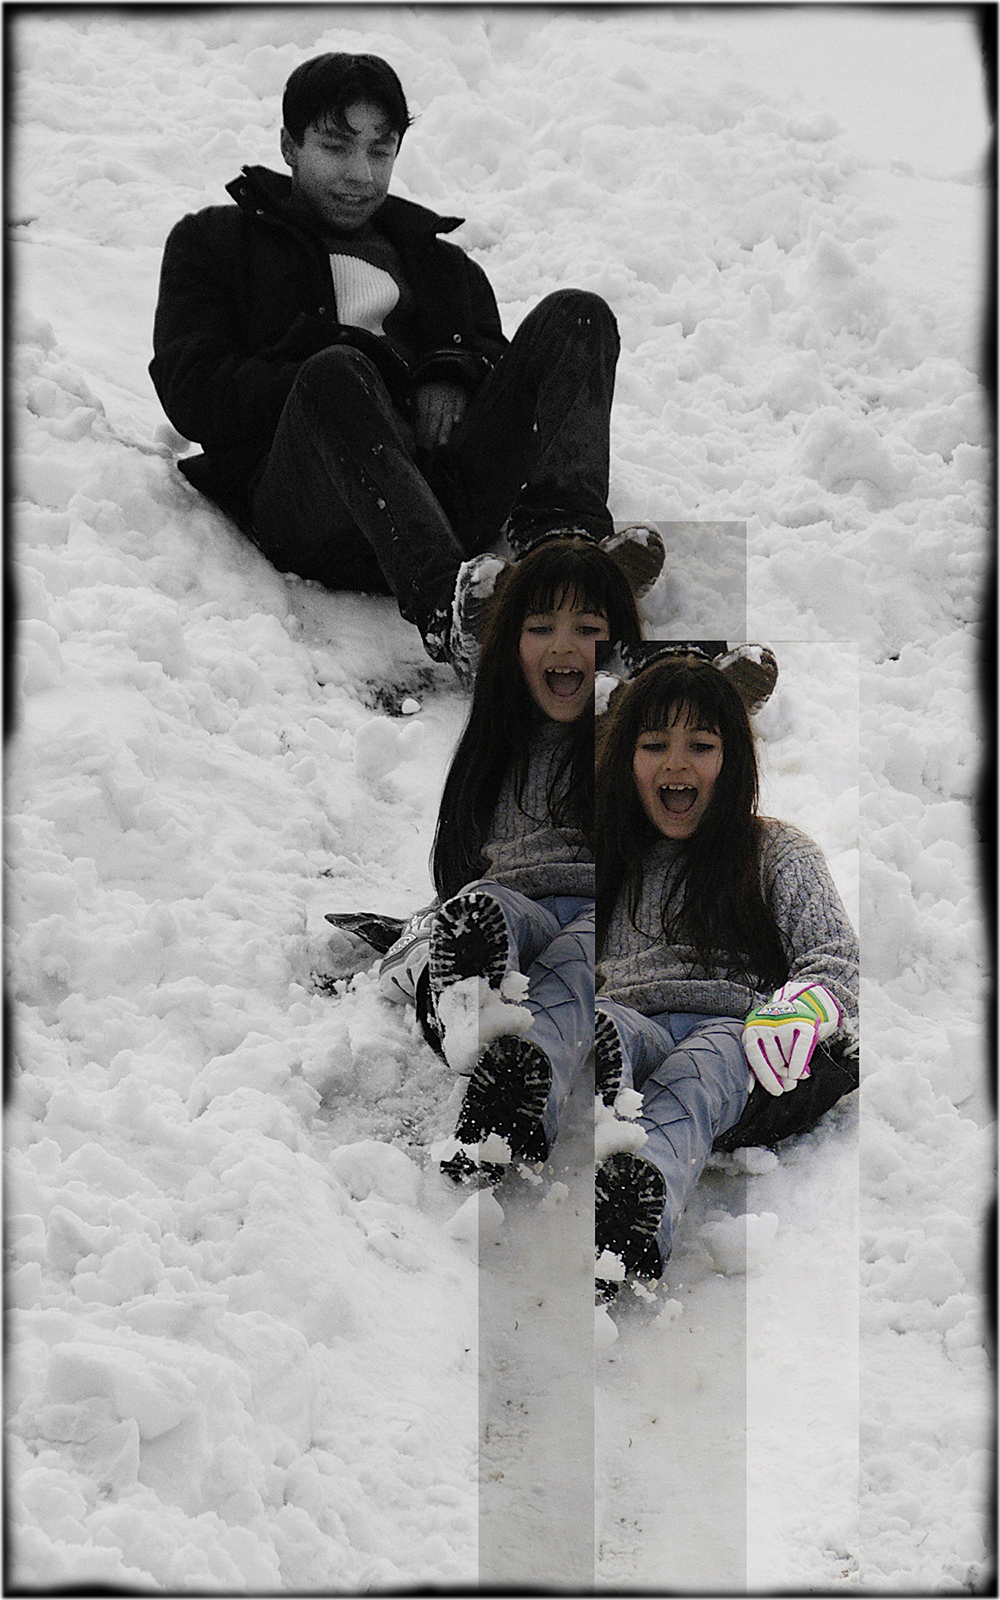 Boy and Girl Sledding, 2005, digital print, 20 x 14 in.